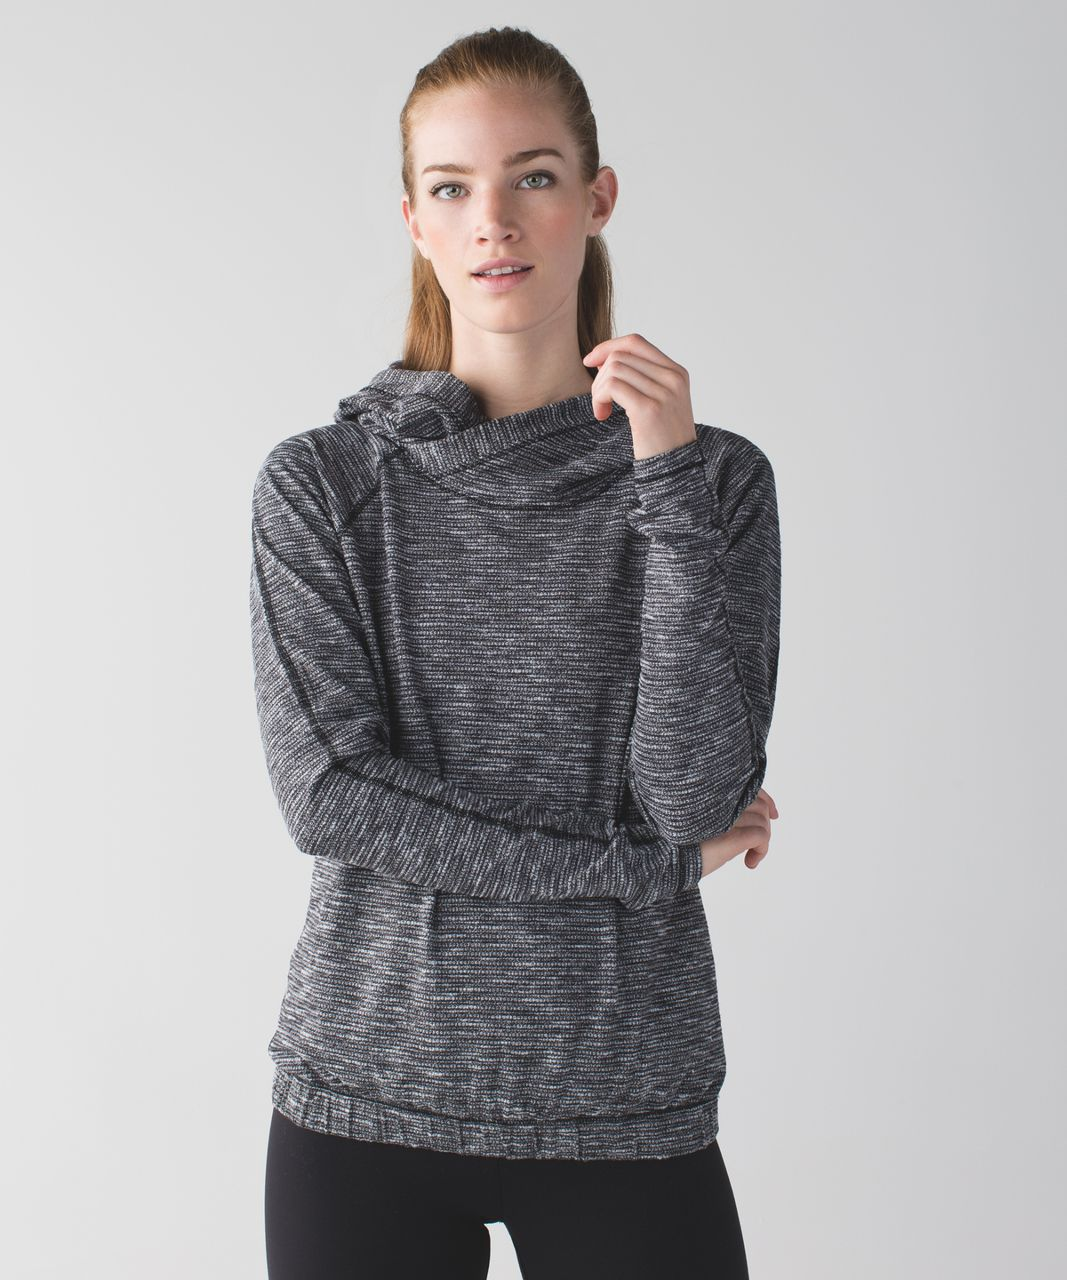 Lululemon Healthy Heart Pullover II - Coco Pique Black White